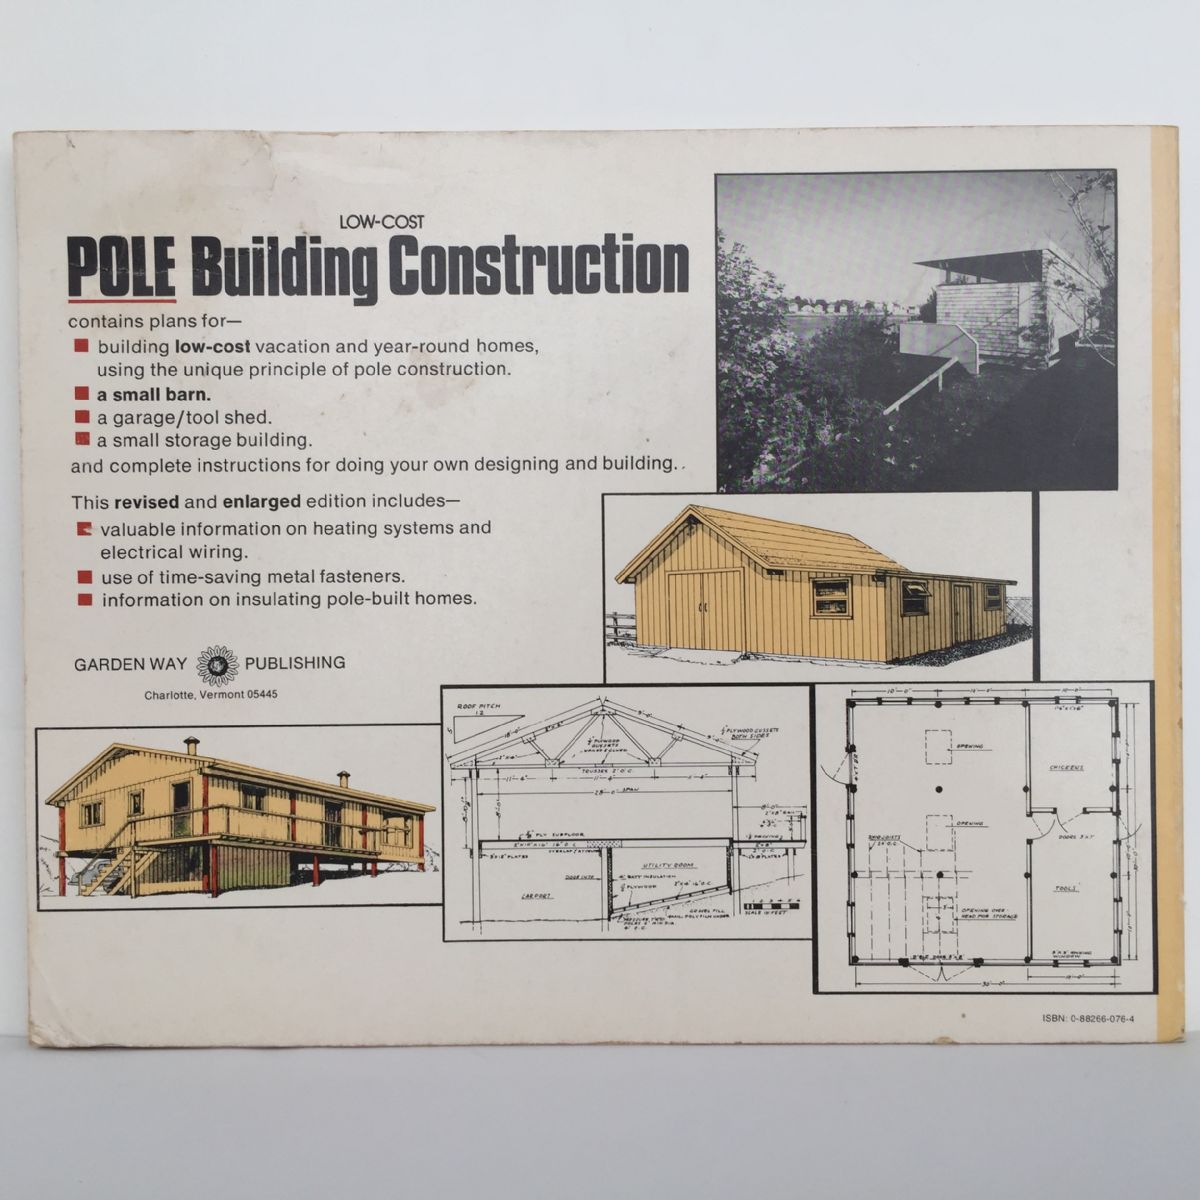 Low-cost Pole Building Construction